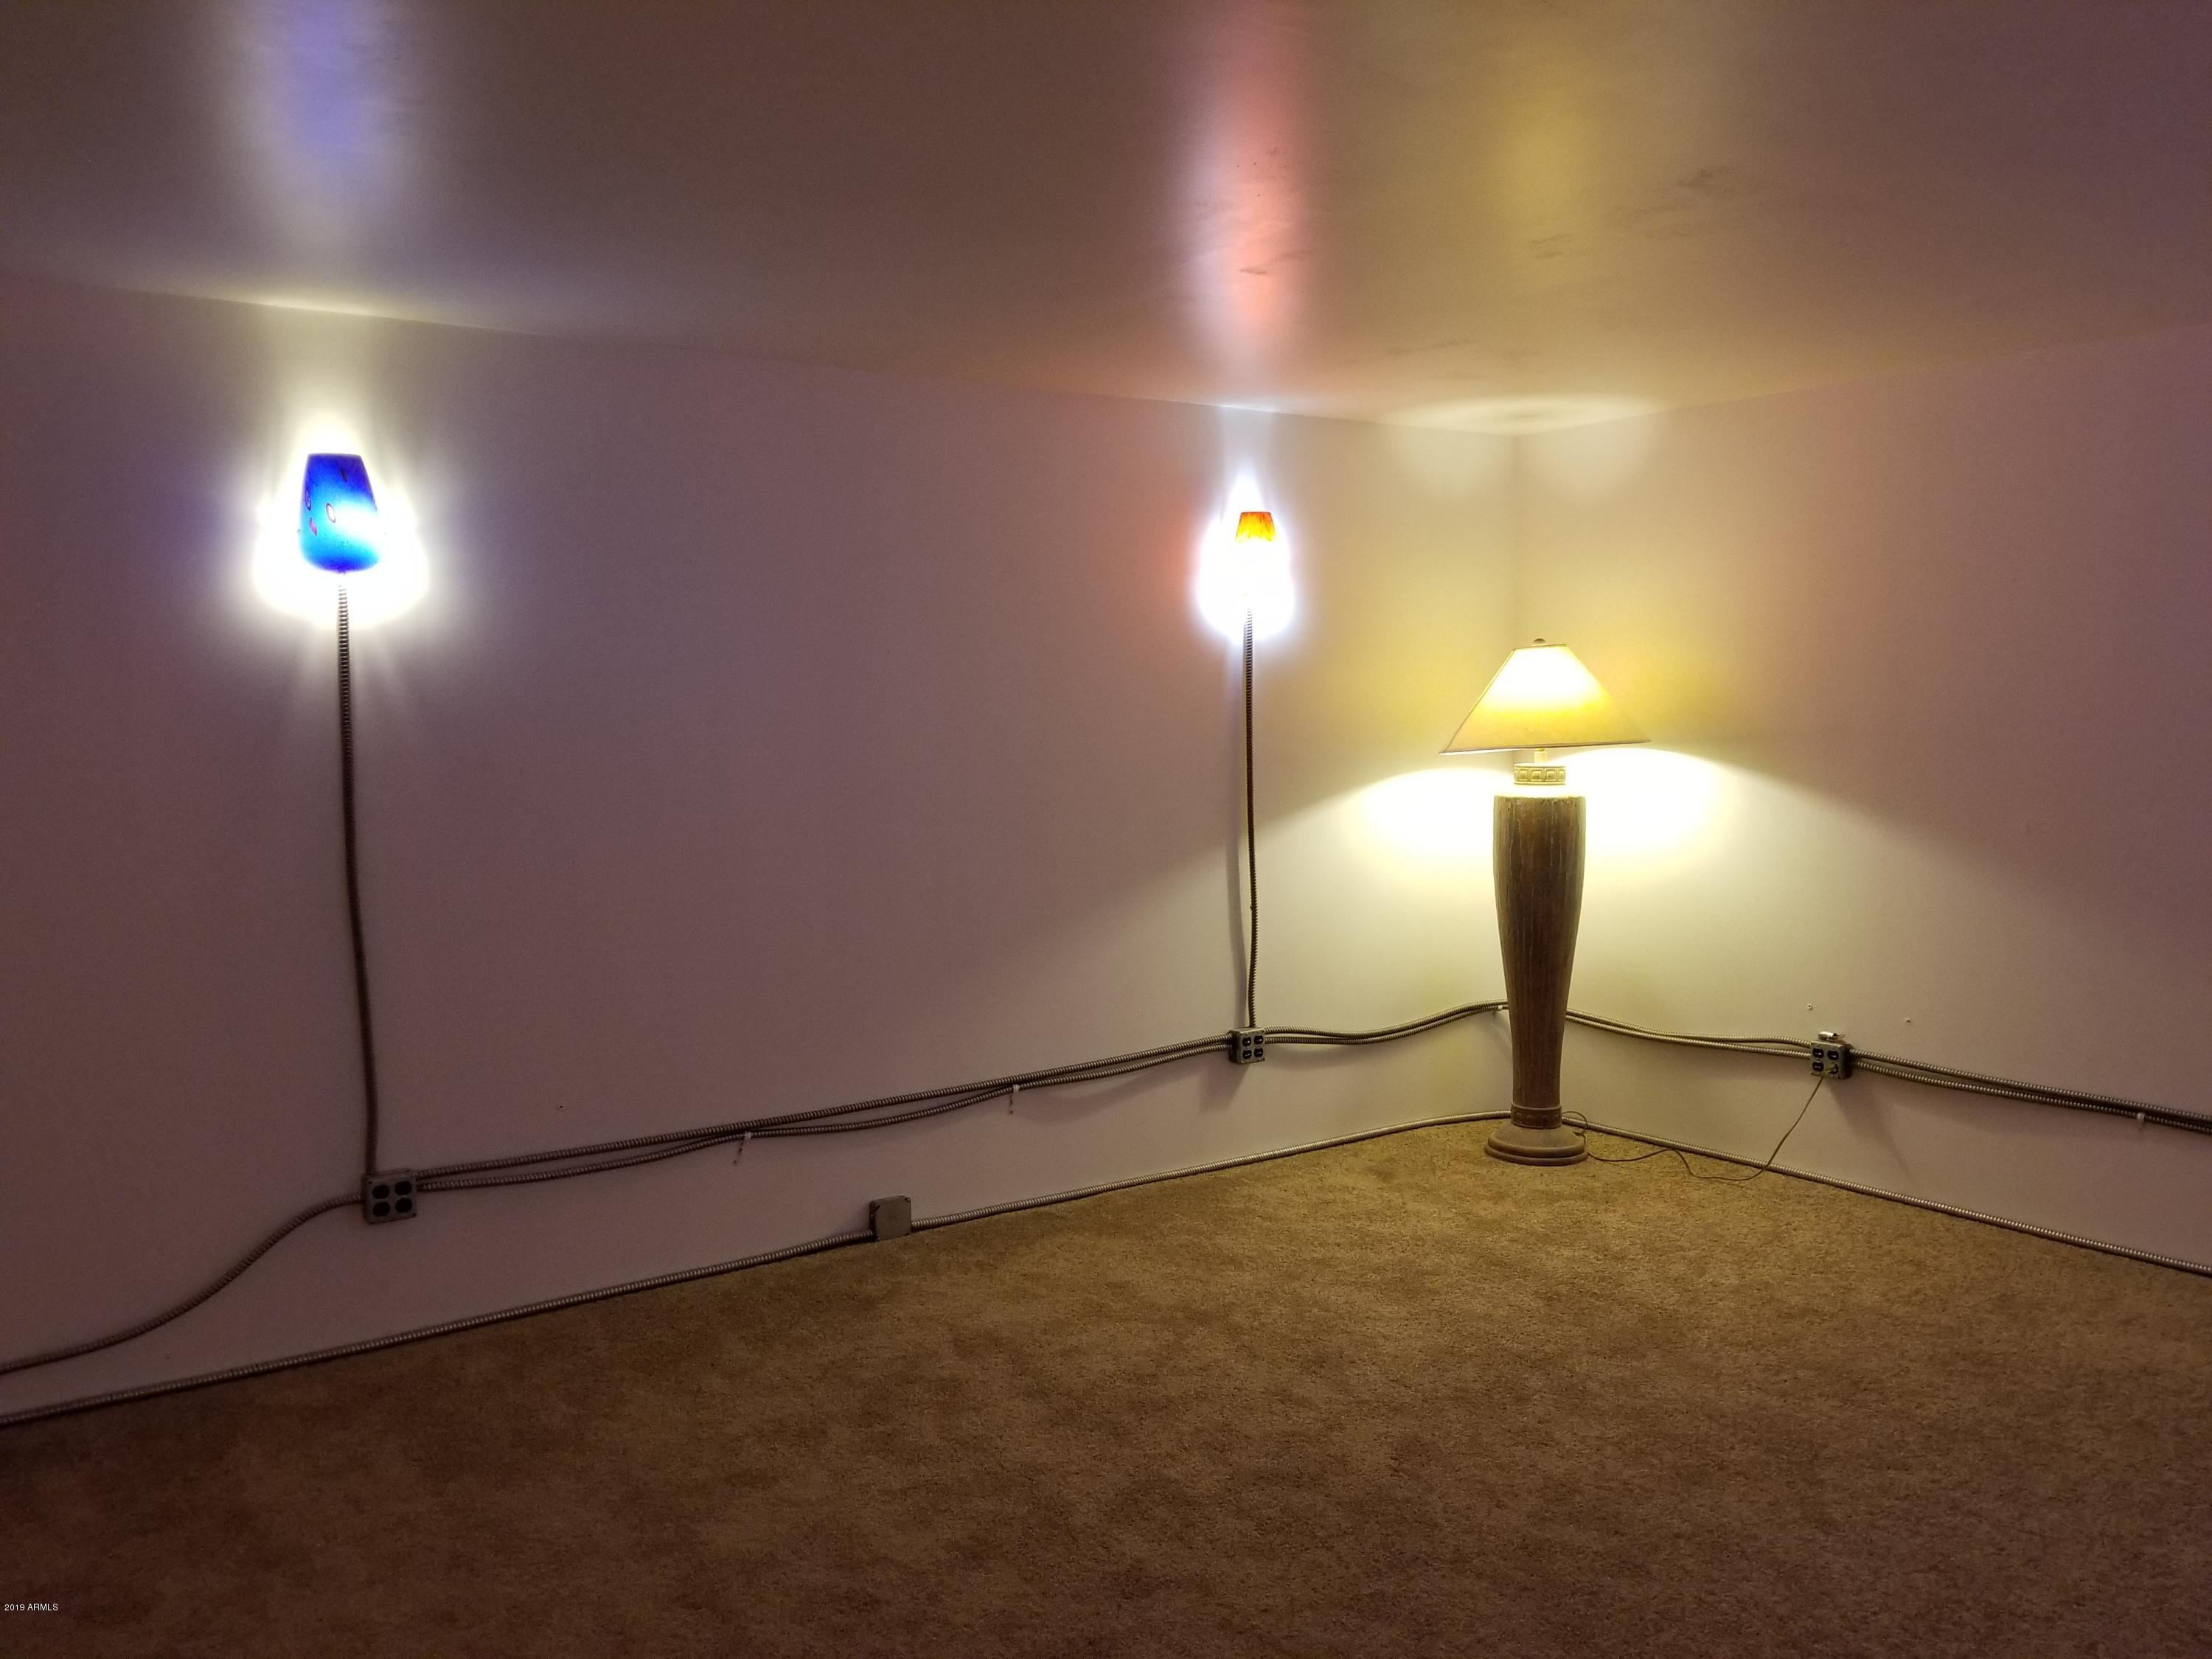 Soundproof Music / Theater Room